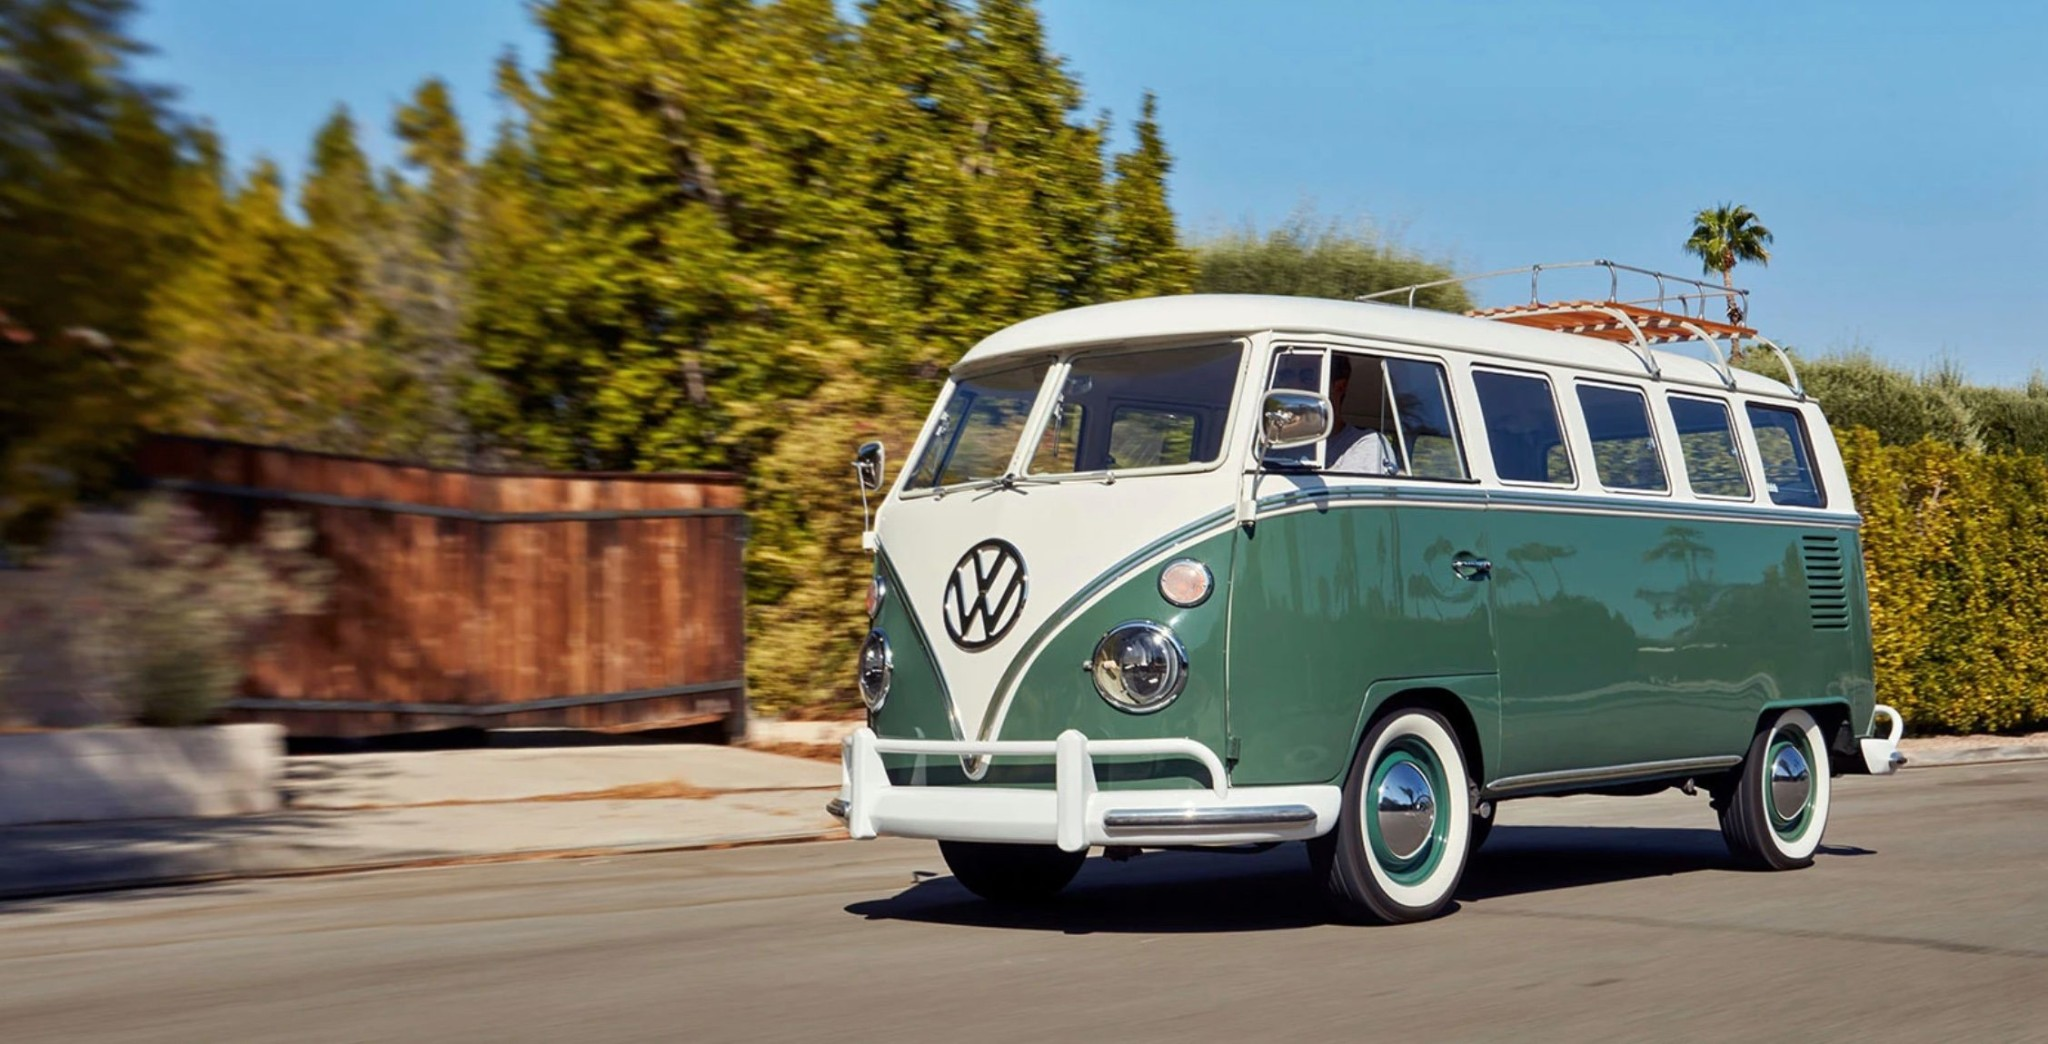 Tesla-powered classic 1966 VW Microbus delivers electric van life and you can win it - Electrek